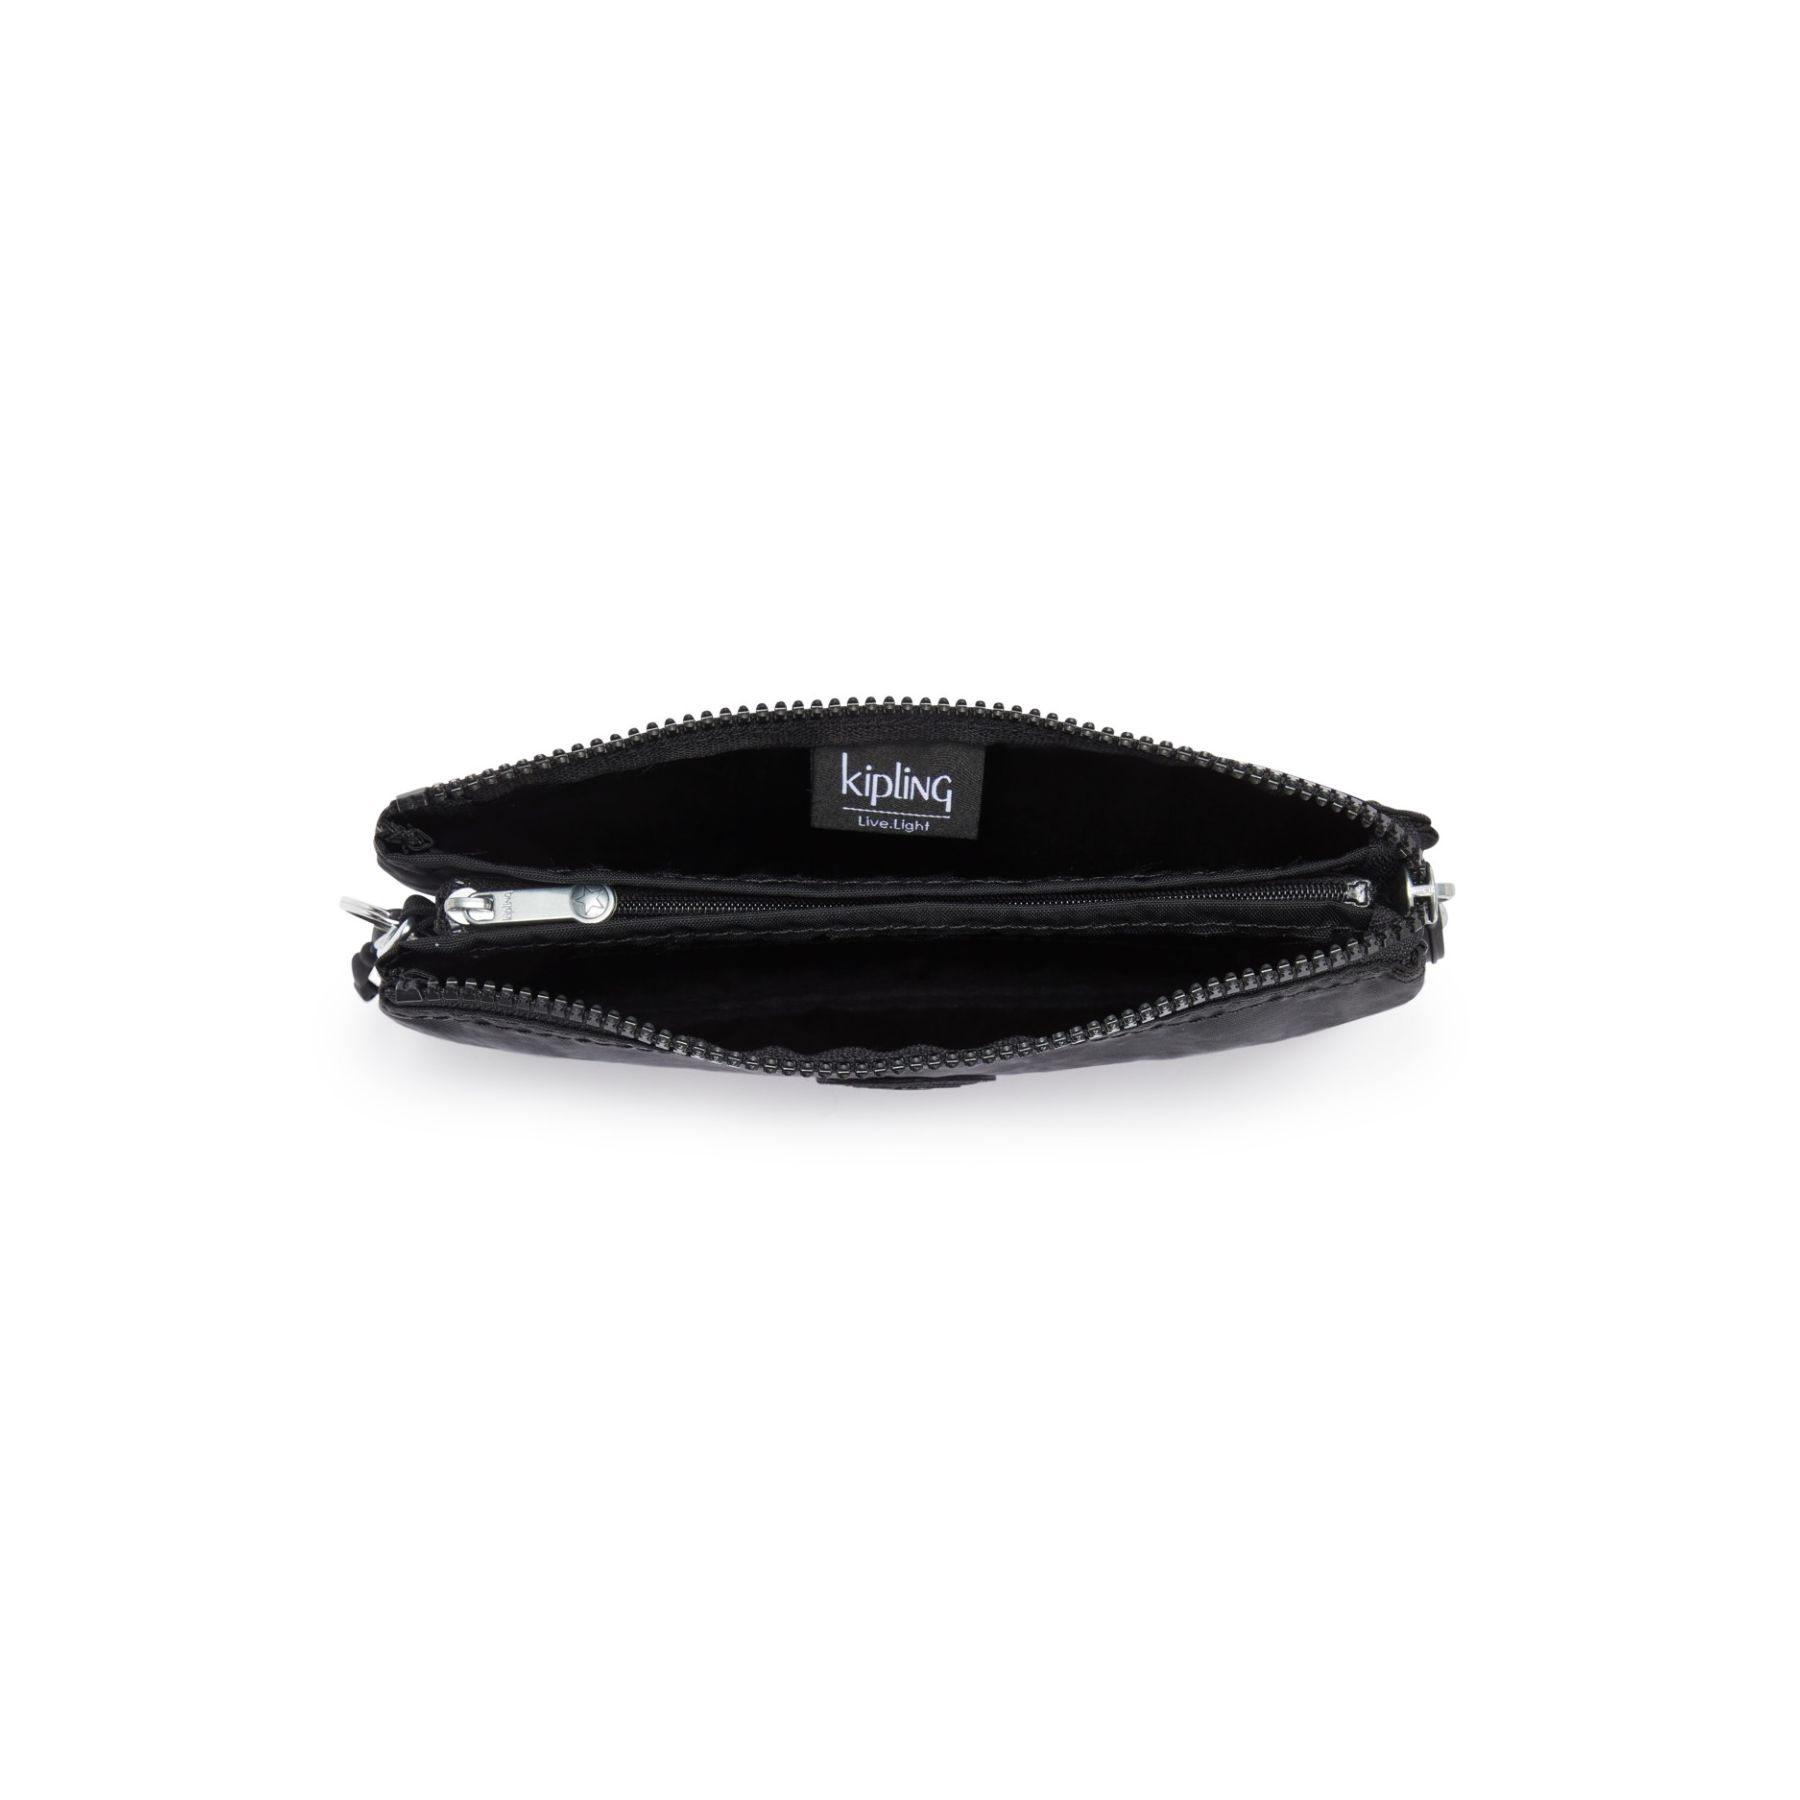 Accessori Creativity XL Kipling Kipling | Accessori | CREATIVITYXLBLACKNOIR